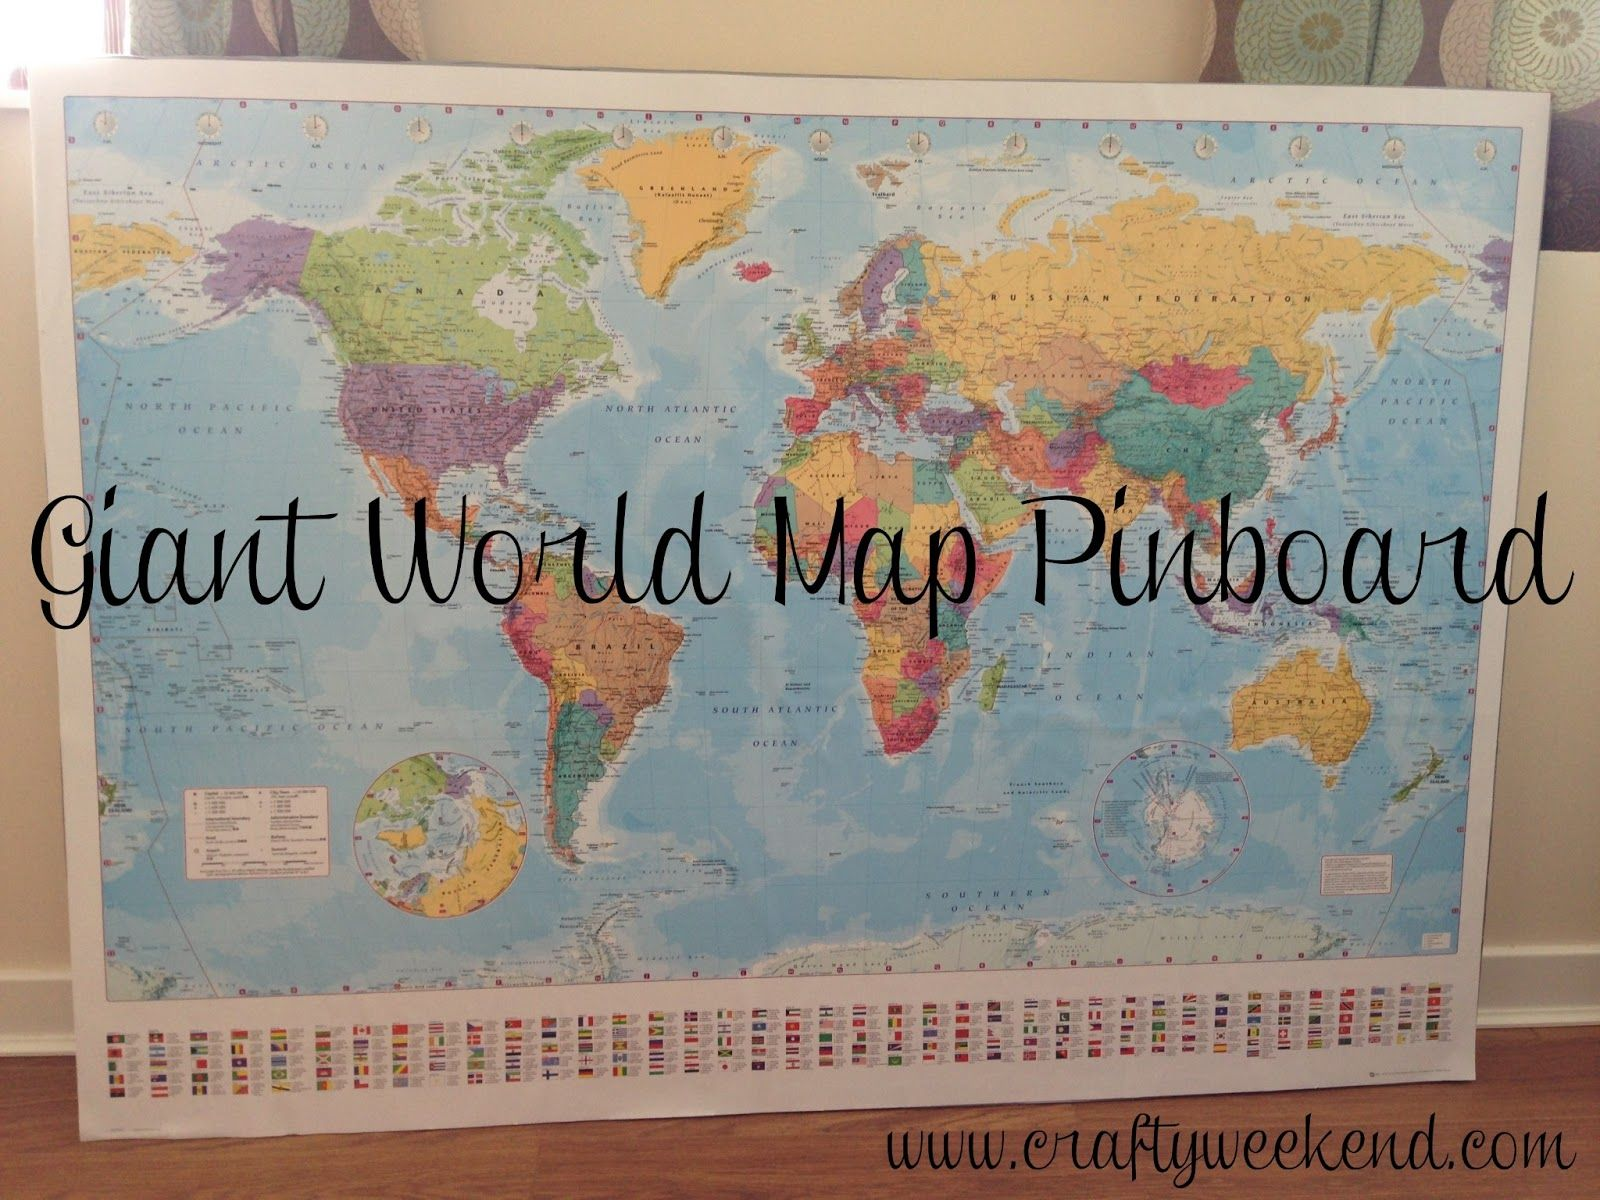 Giant foam board wall map | Decor in 2019 | World map pin ... on wall maps of the world, giant map of ireland, giant world map of clouds, giant globe ball, giant map of usa, giant world map poster, giant map of germany, giant map of africa, giant map of japan, giant europe map, giant map of asia, maps that change your view of the world, giant canada map,